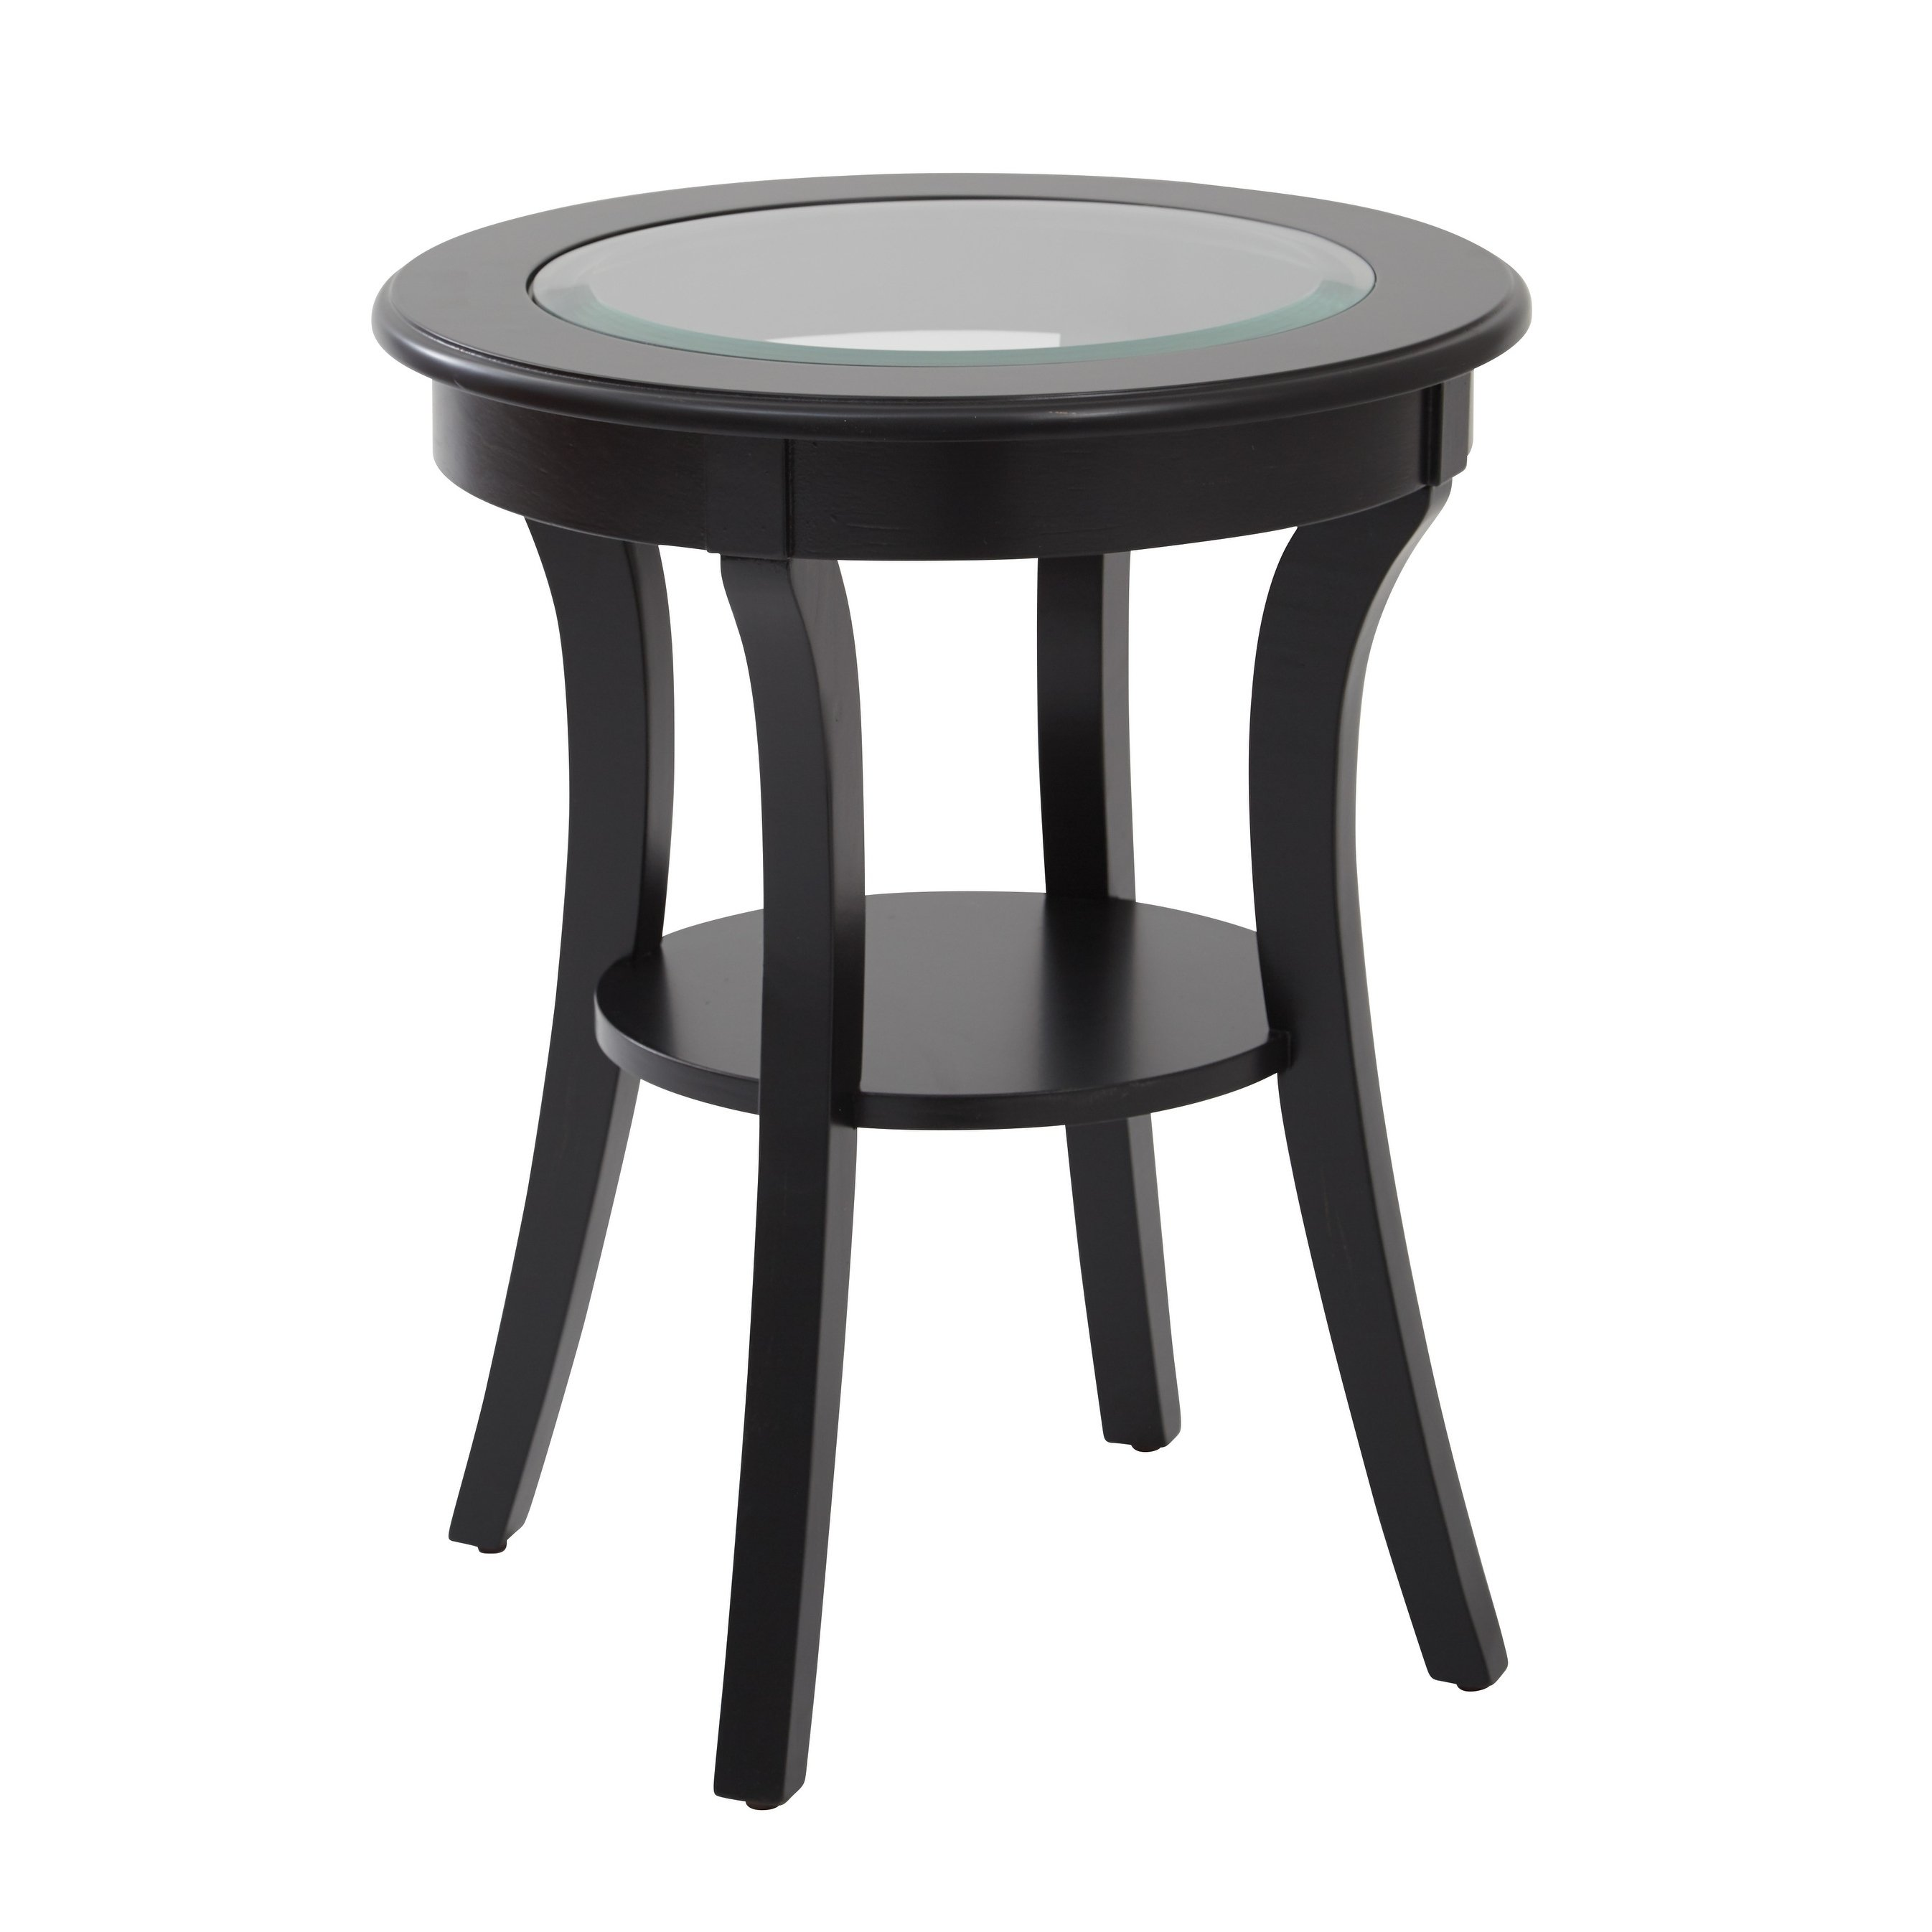 osp home furnishings harper round accent table with glass top designs free shipping today metal outdoor side next chesterfield sofa living room interior design wood and end tables